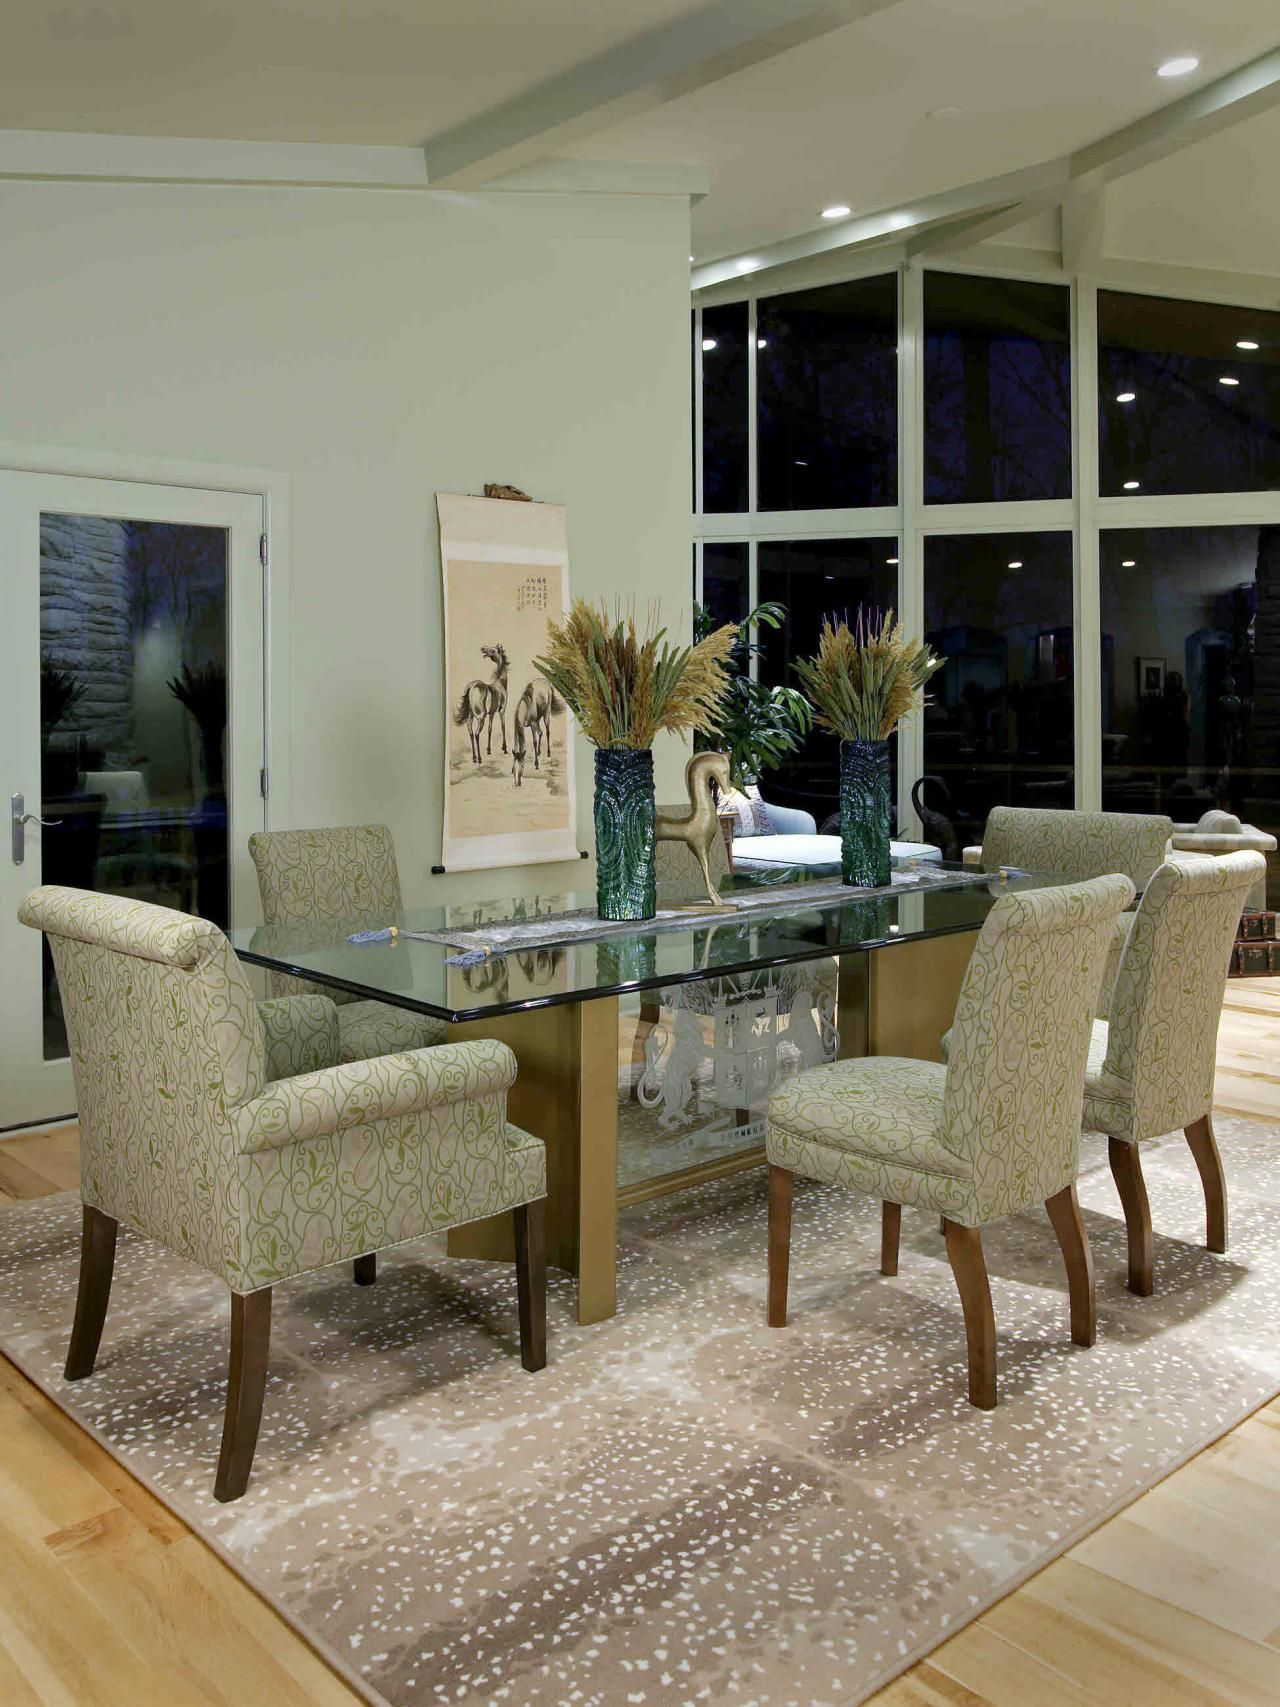 This contemporary dining room features a glass table with for Salle a manger crest